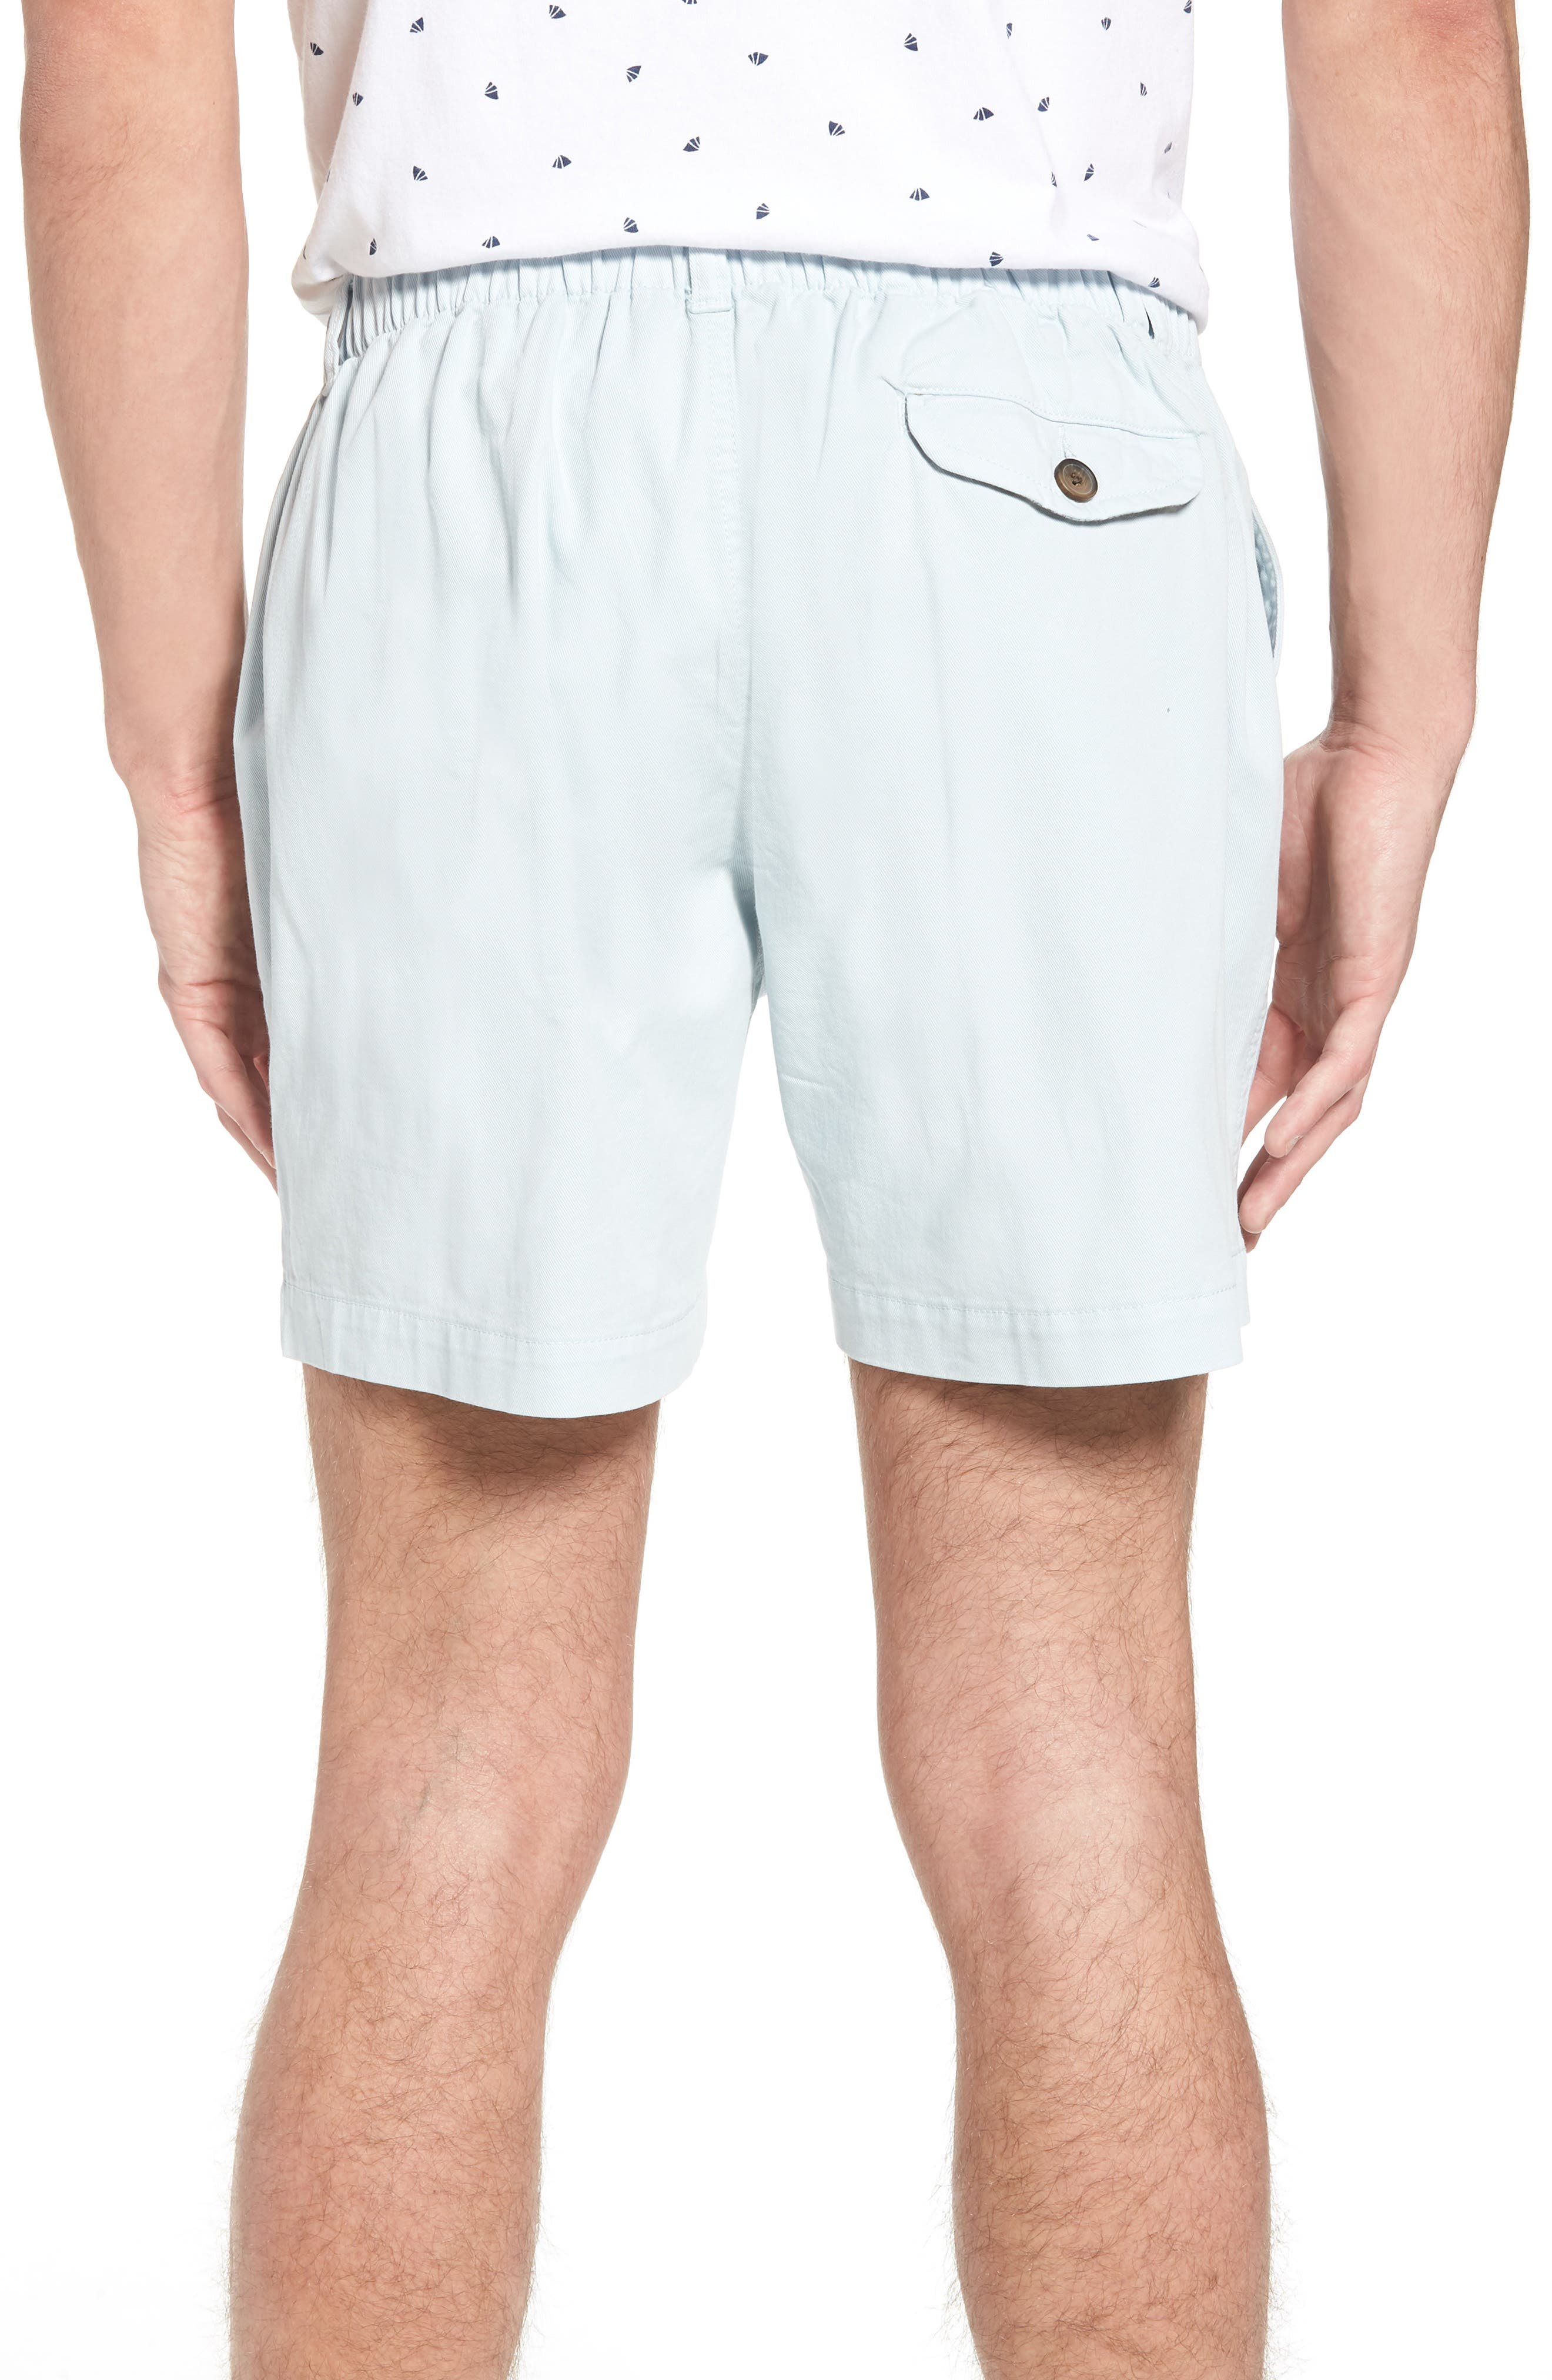 Snappers Elastic Waist 5.5 Inch Stretch Shorts,                             Alternate thumbnail 2, color,                             Sky